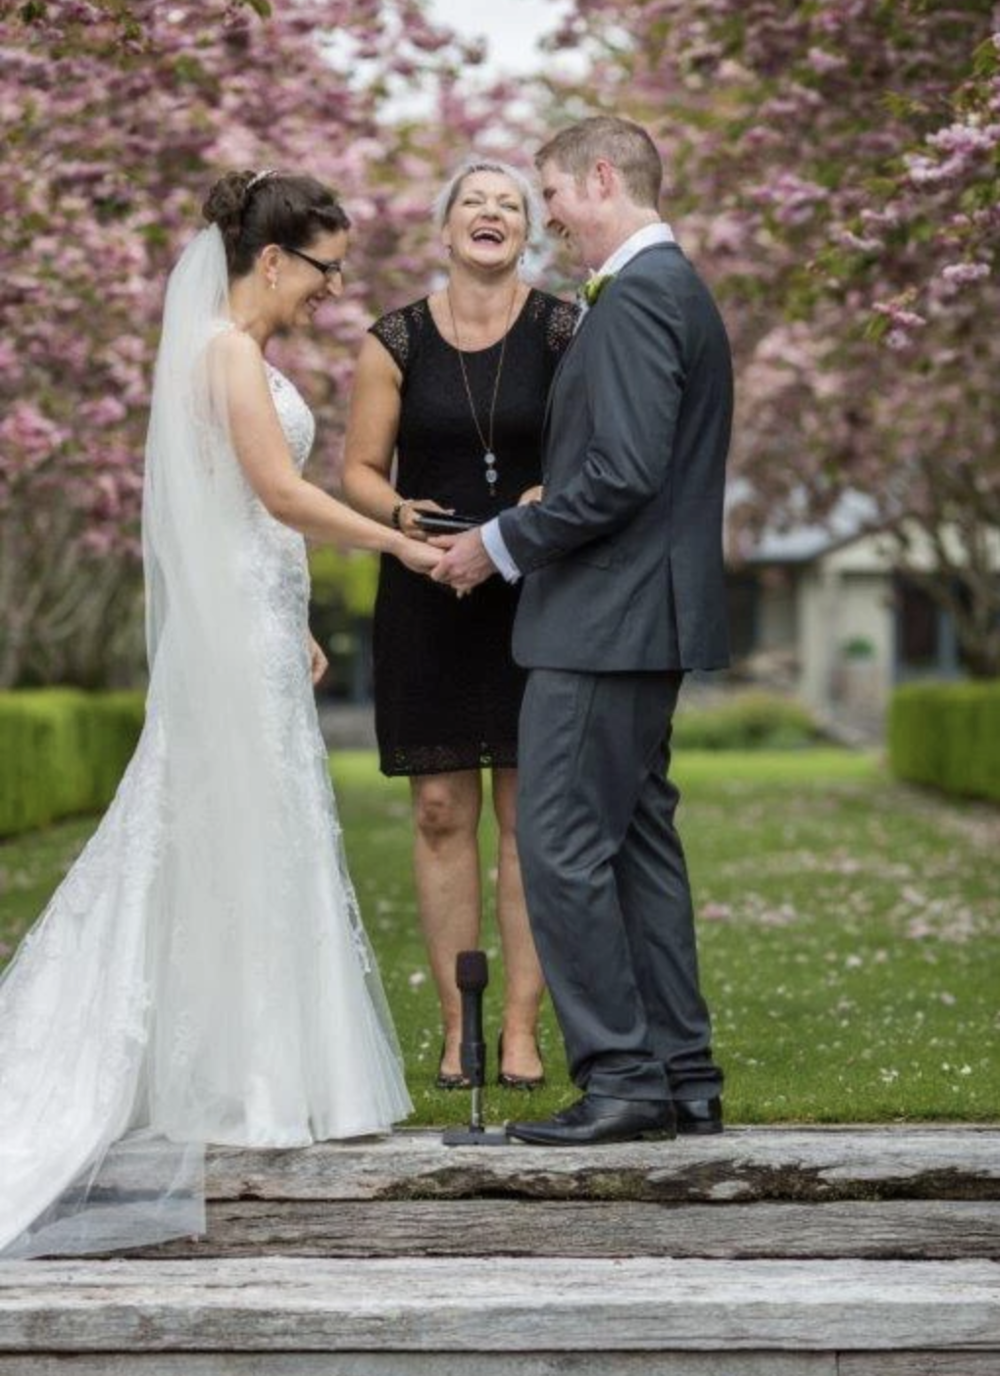 Finally, an Experienced Celebrant You Can Trust - We know it's difficult to trust a stranger with the personal details of your special day. That's why we suggest all of our NZ couples get in touch with experienced celebrant Sharyn Payne as soon as possible! Sharon is relaxed and down-to-earth, as well as enthusiastic about each couple's unique story. No matter your background or beliefs, rest assured she will create a ceremony program that honors your core values and puts you both at ease.Visit WebsiteInvercargill, New ZealandPhone: +64 27 489 4747Email: sharynpaynecelebrant@gmail.com